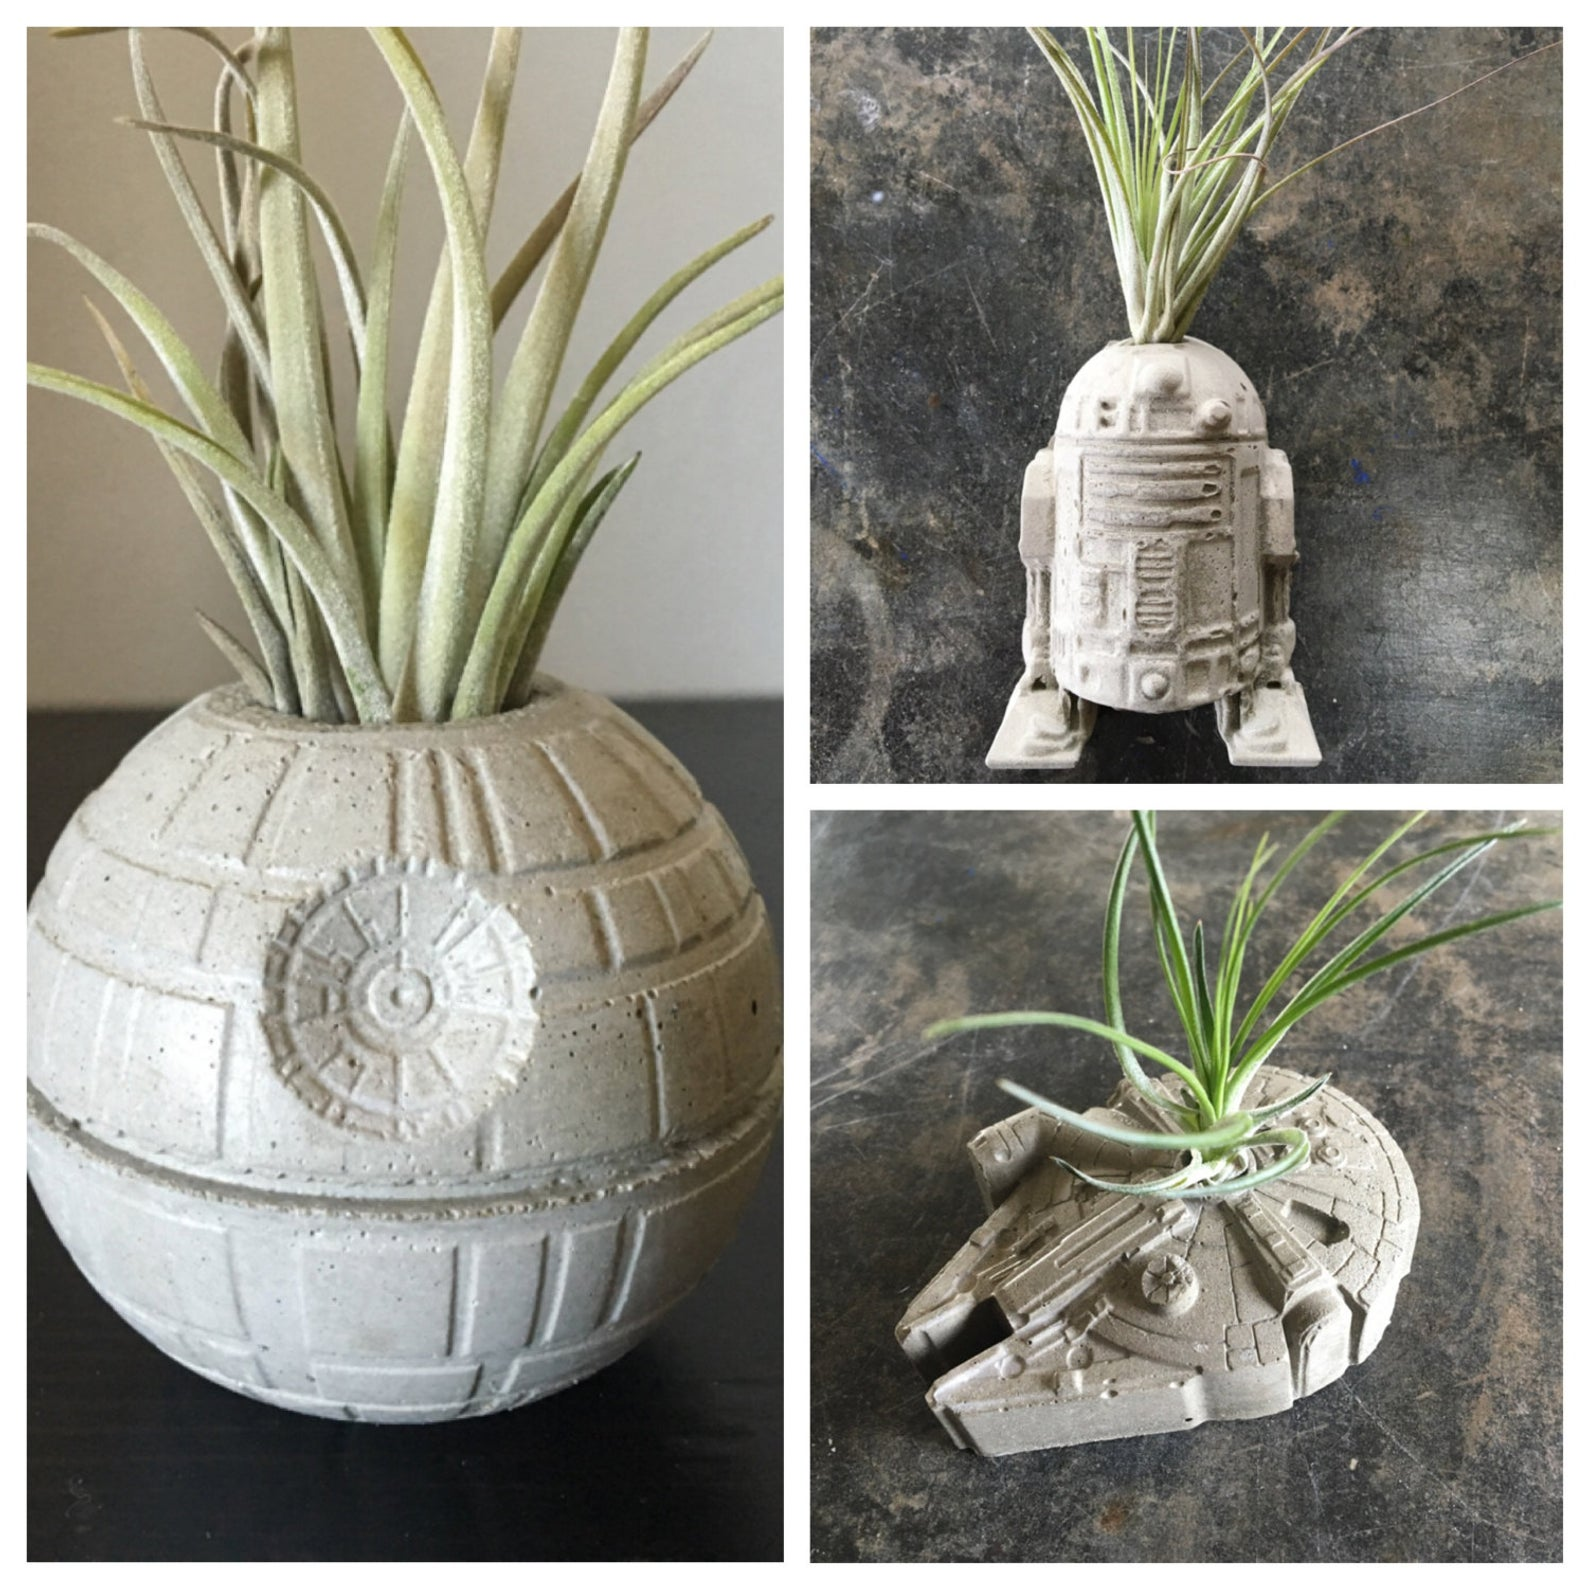 Cool star wars concrete planter